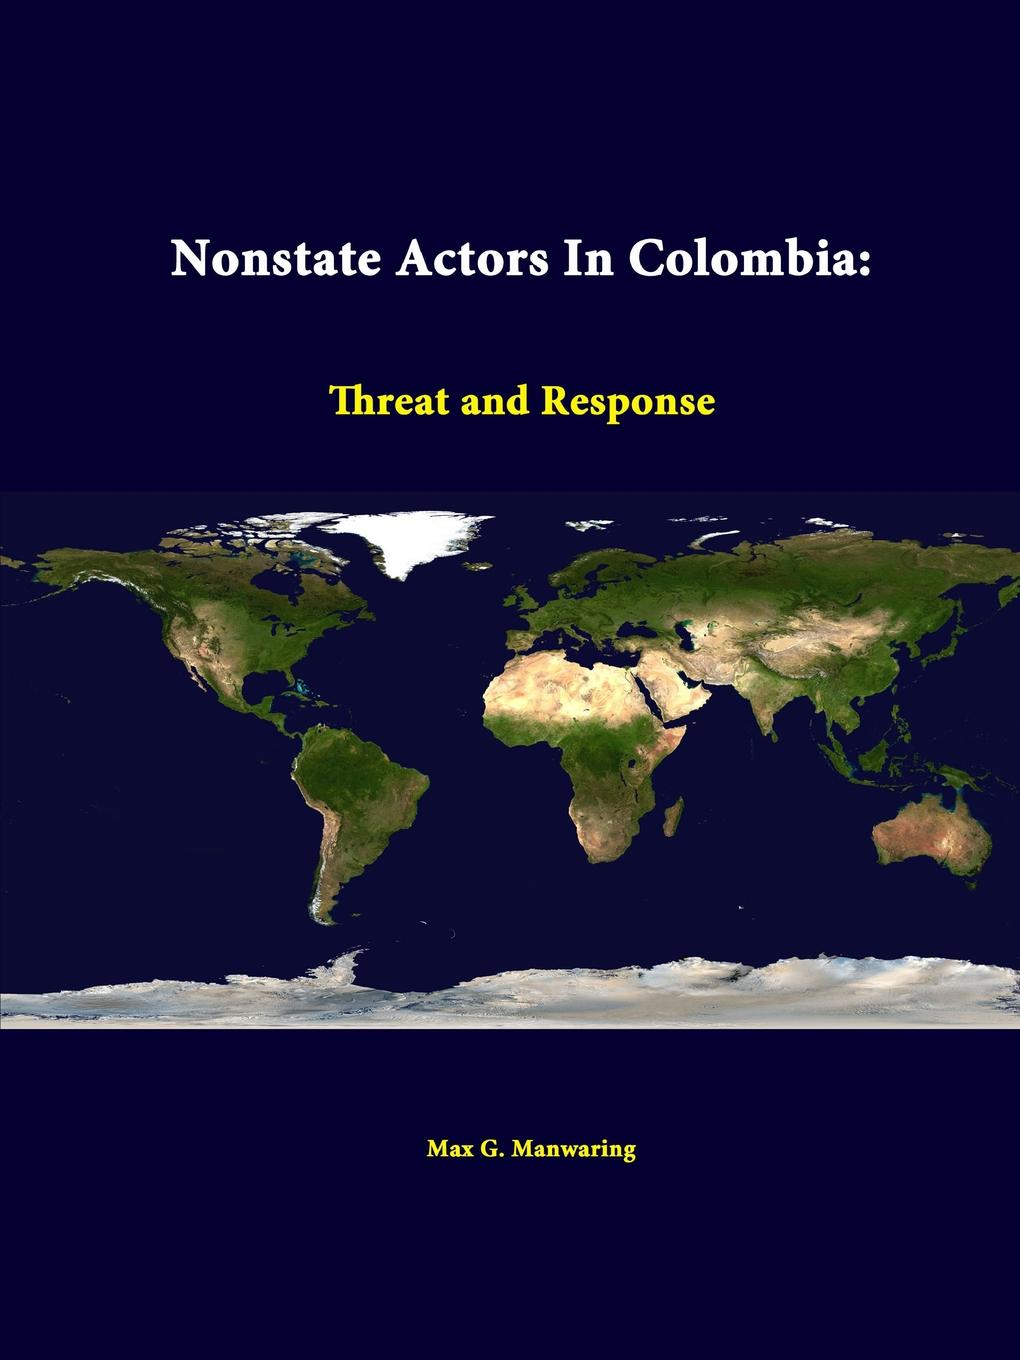 Max G. Manwaring, Strategic Studies Institute Nonstate Actors in Colombia. Threat and Response toshi yoshihara strategic studies institute chinese information warfare a phantom menace or emerging threat